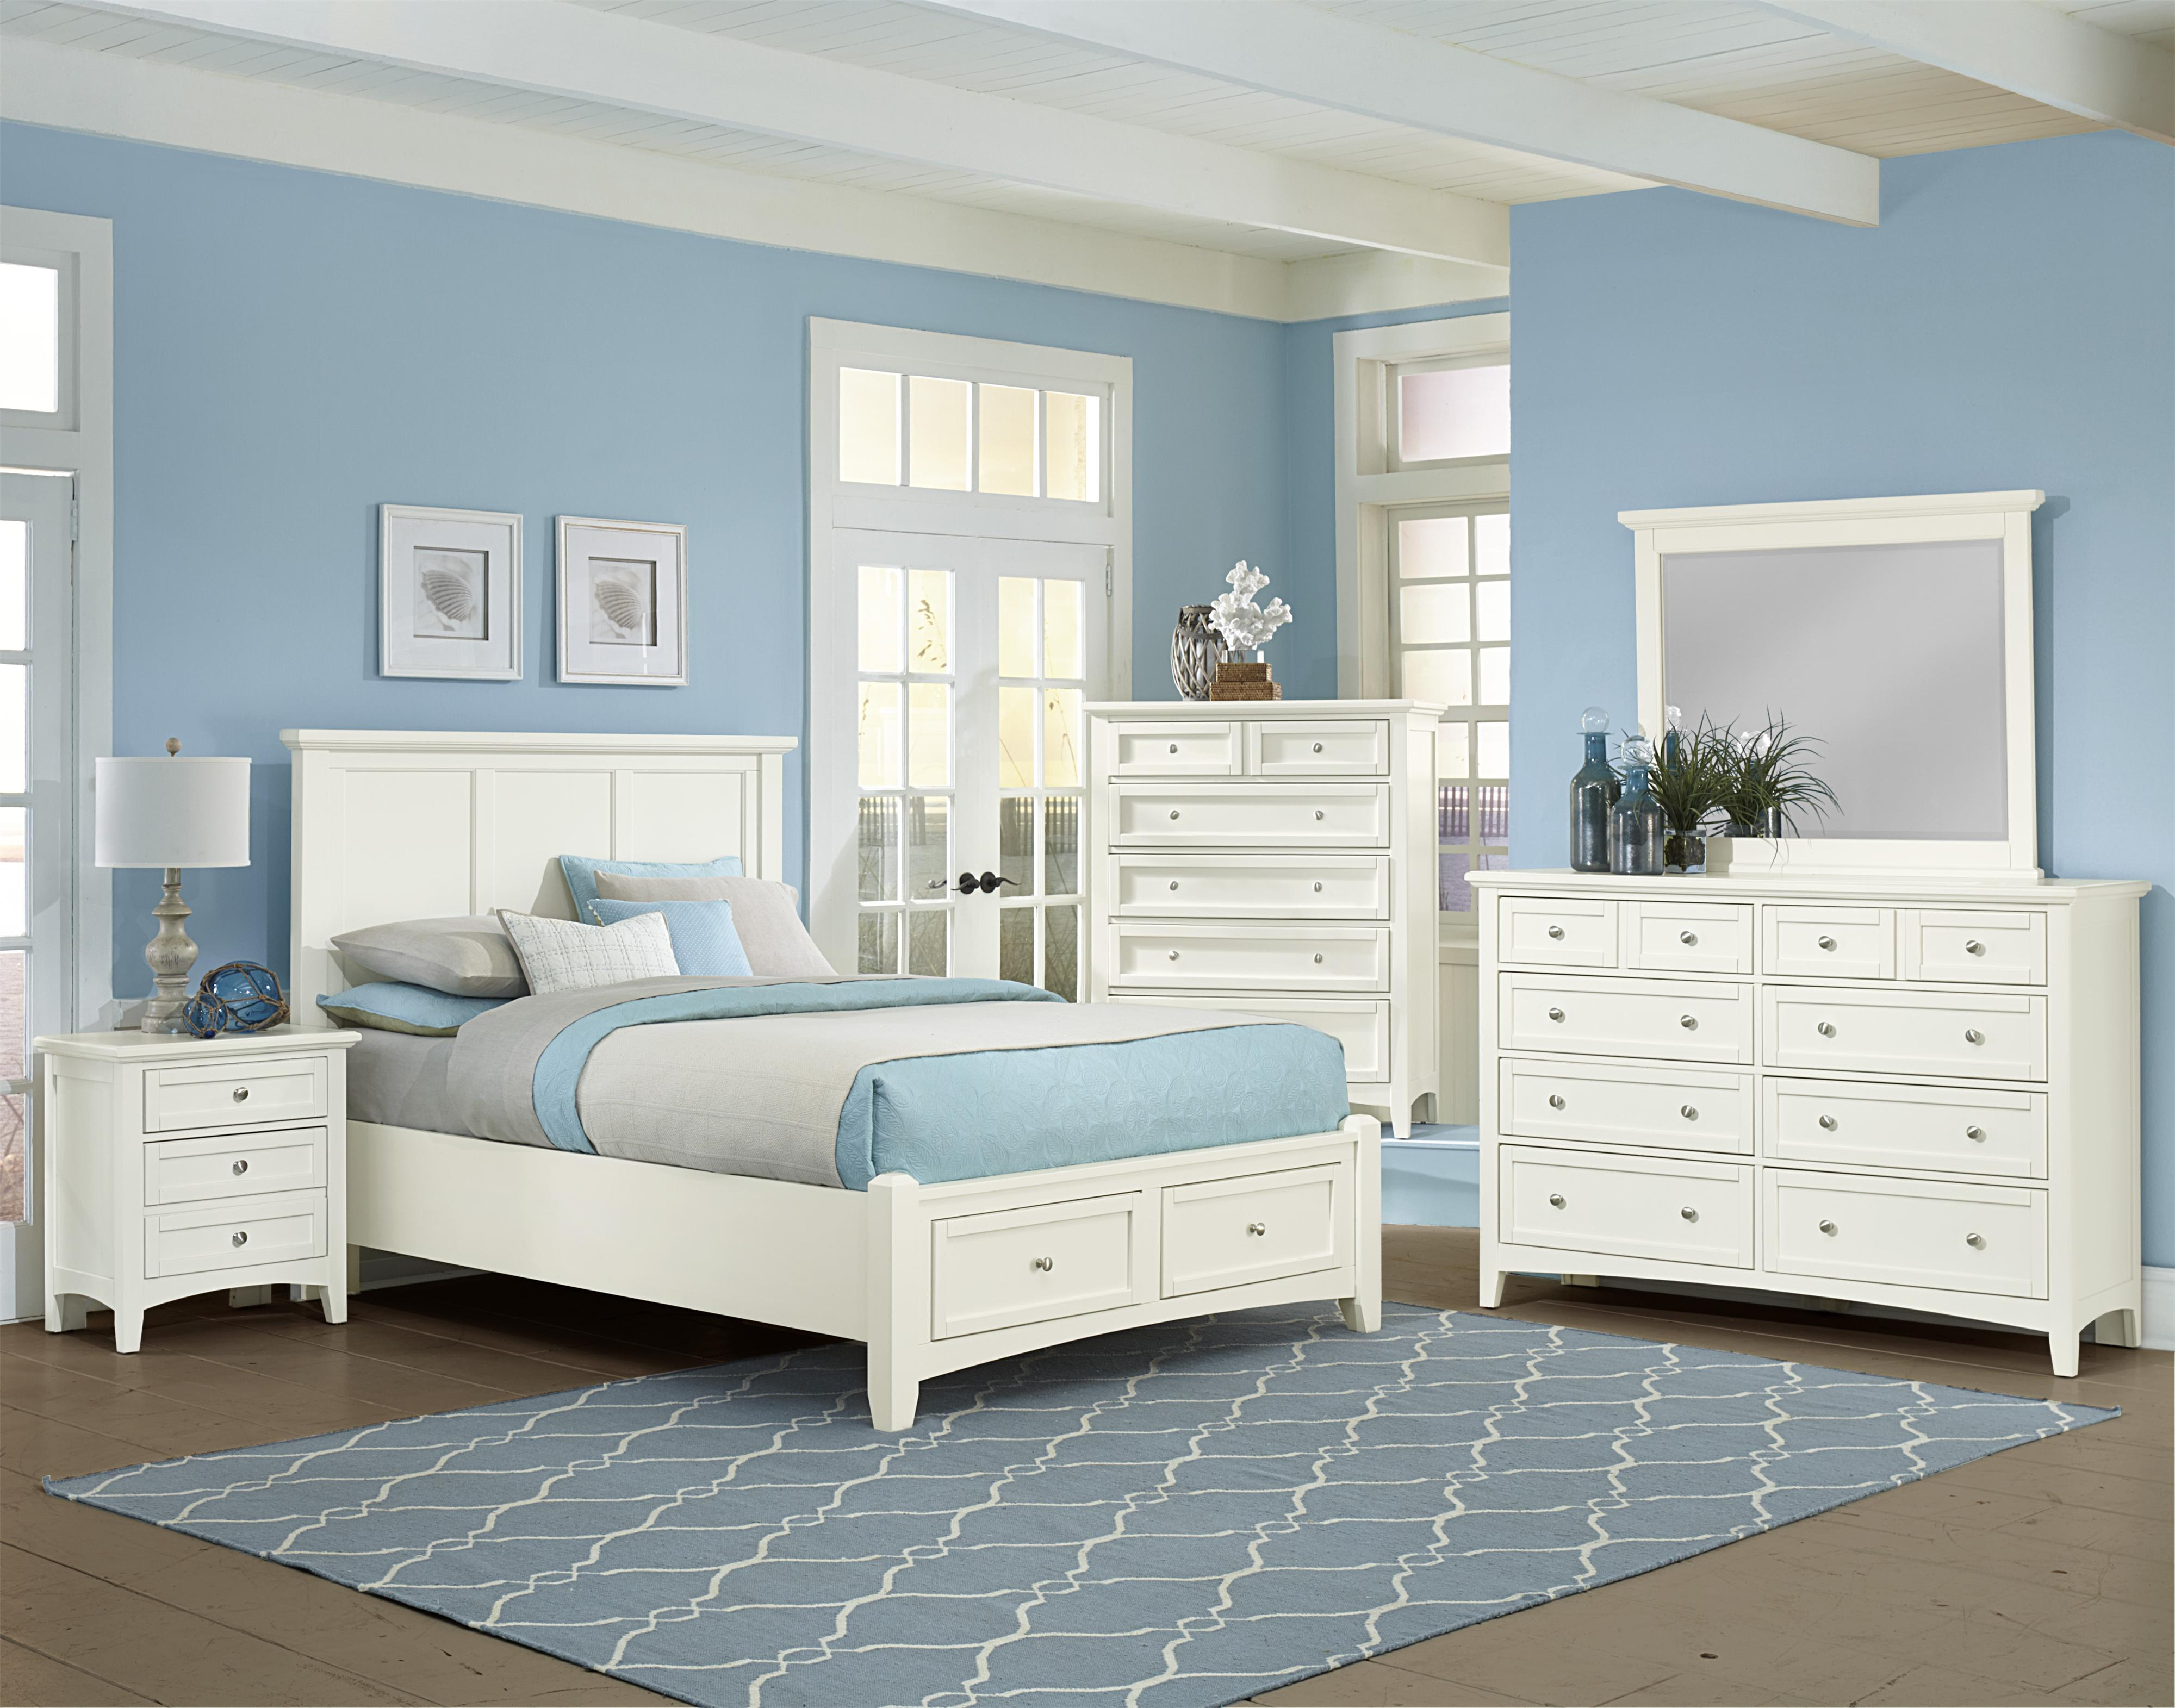 Vaughan Bassett Bonanza Full Mansion Storage Bed With 2 Drawers Great American Home Store